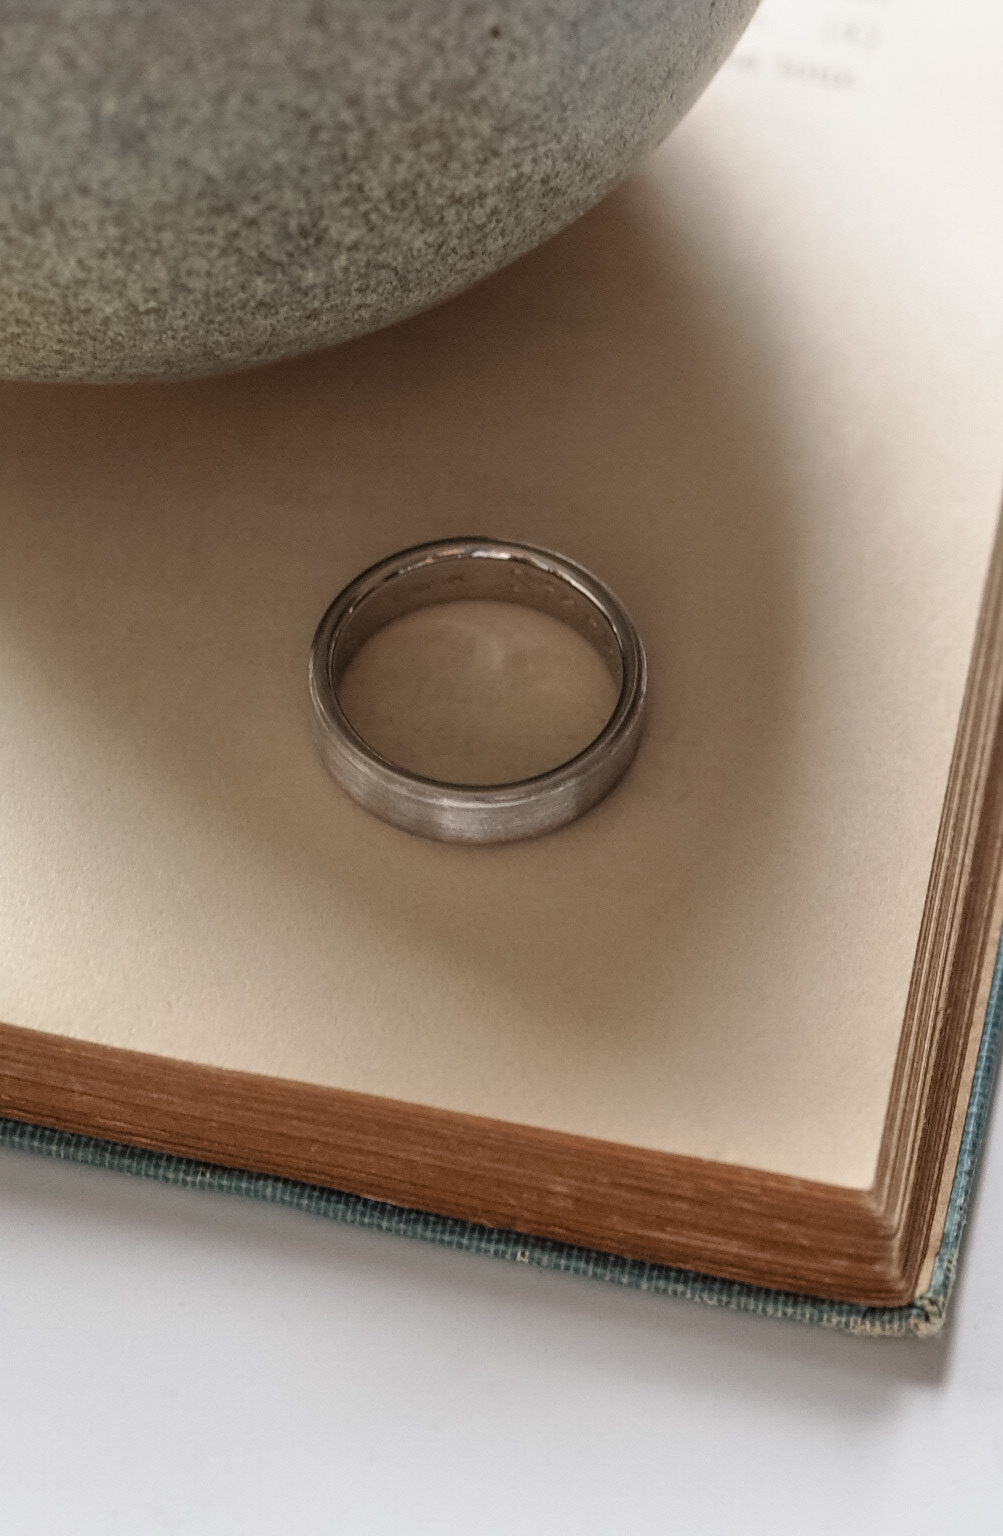 How Long Does It Take To Make A Custom Wedding Ring Bianca Jones4